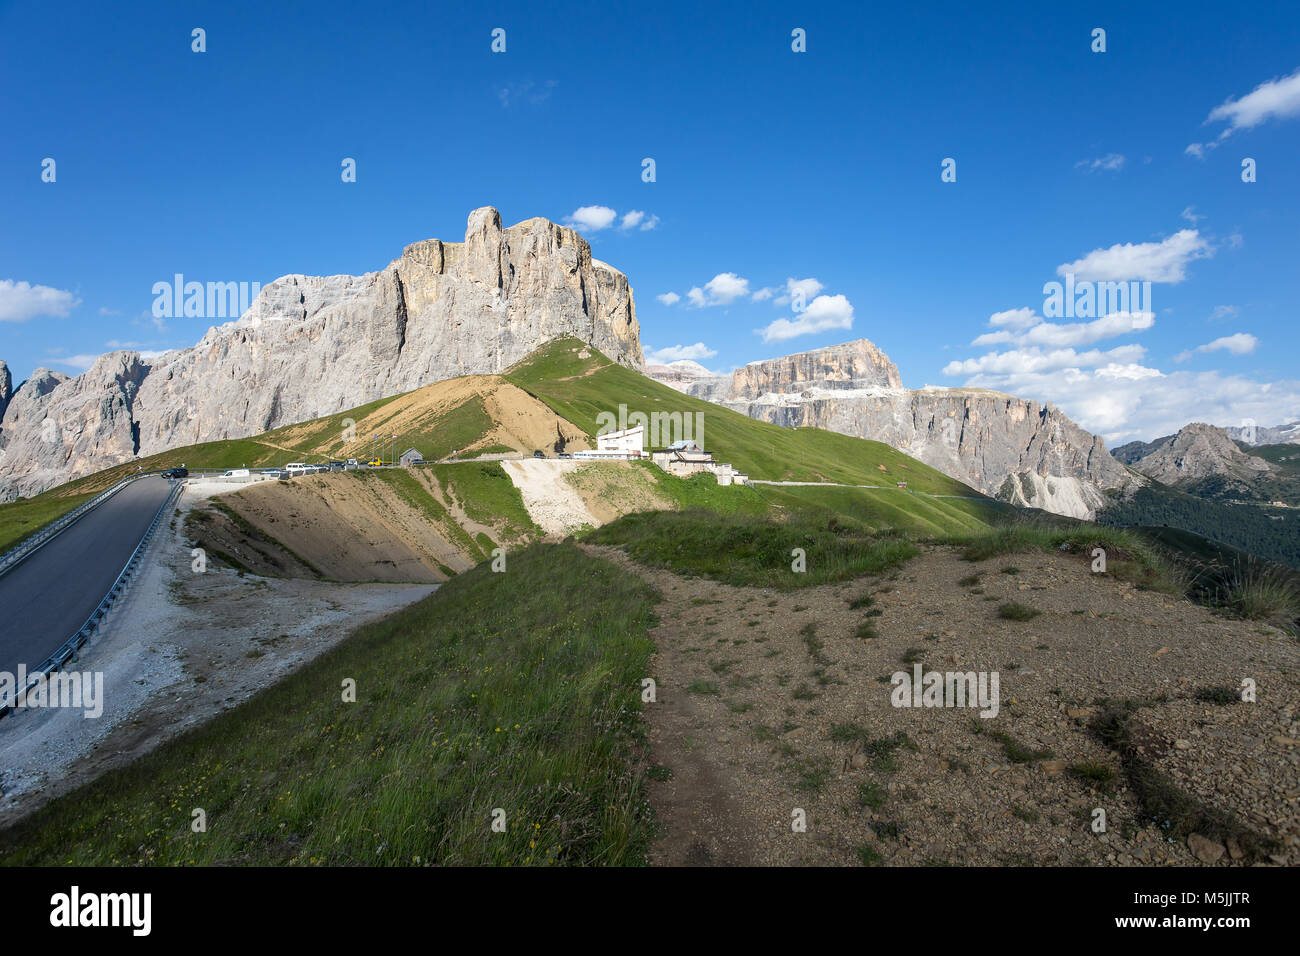 The Sella group near the Passo Sella in Val Gardena and Sass Pordoi with flowering meadows and mountain hiking trails/ Stock Photo